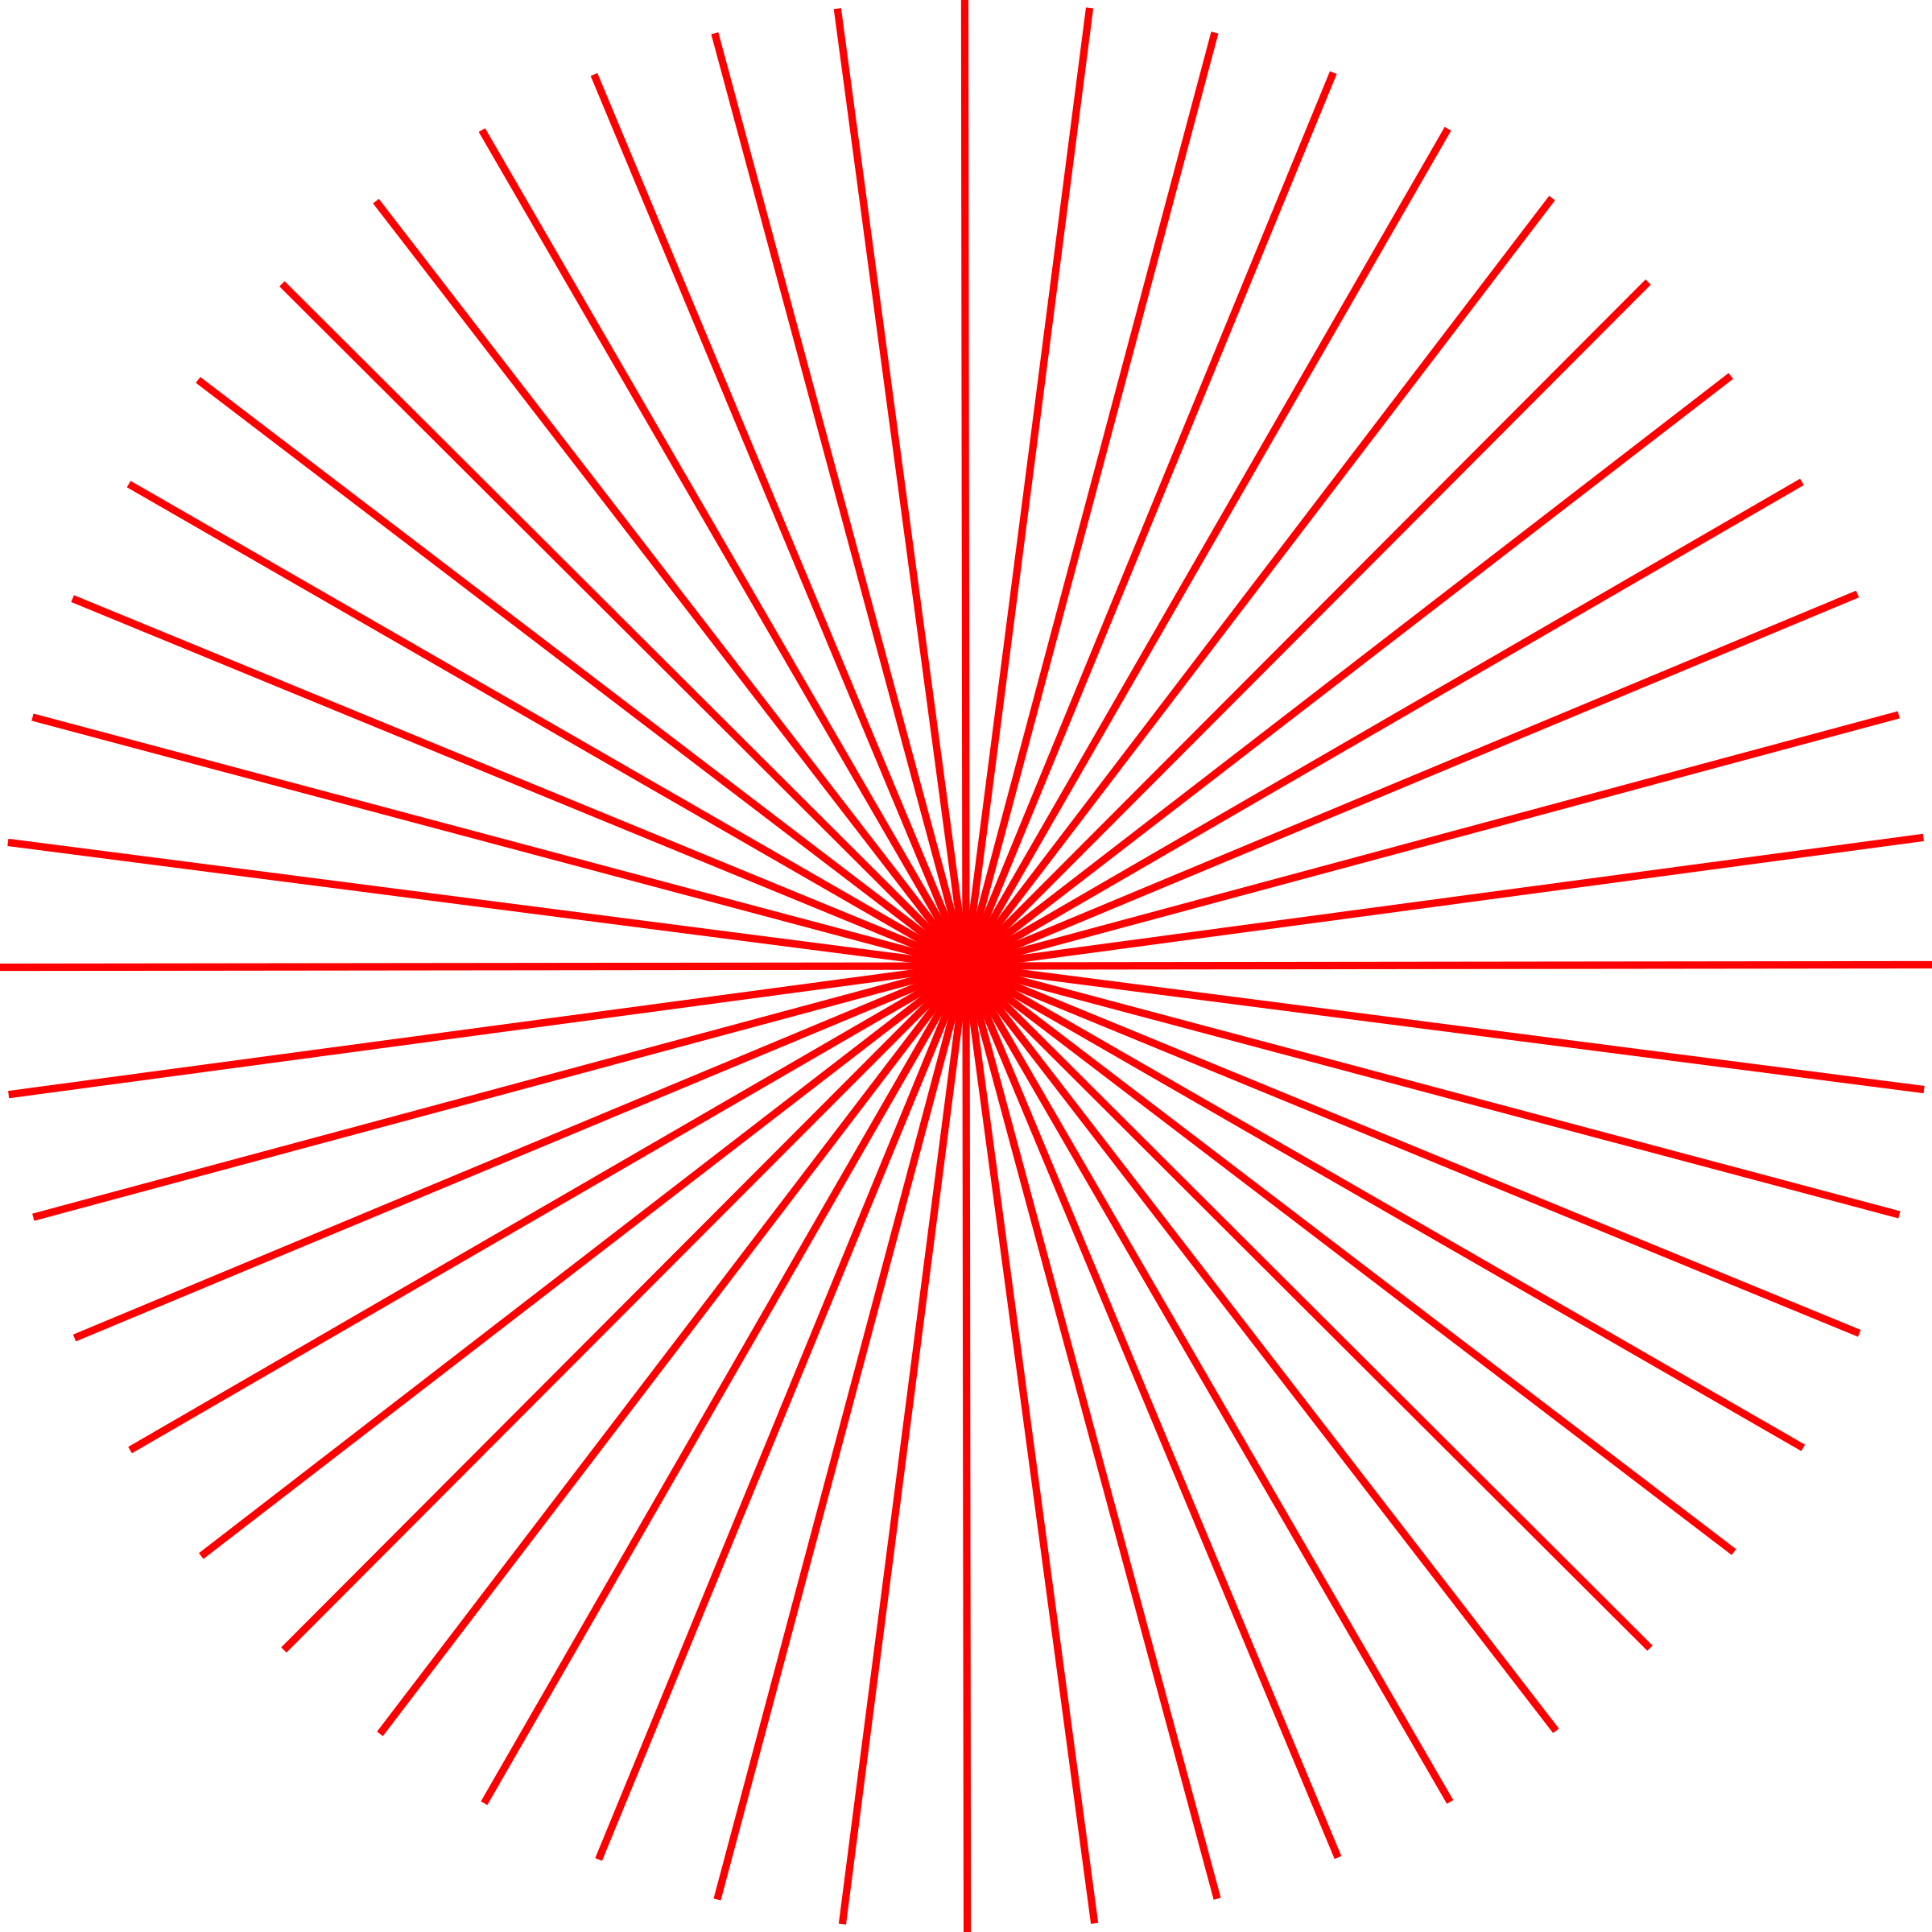 Sun rays clipart png picture library library Clipart - abstract sun 1 (48 rays) picture library library